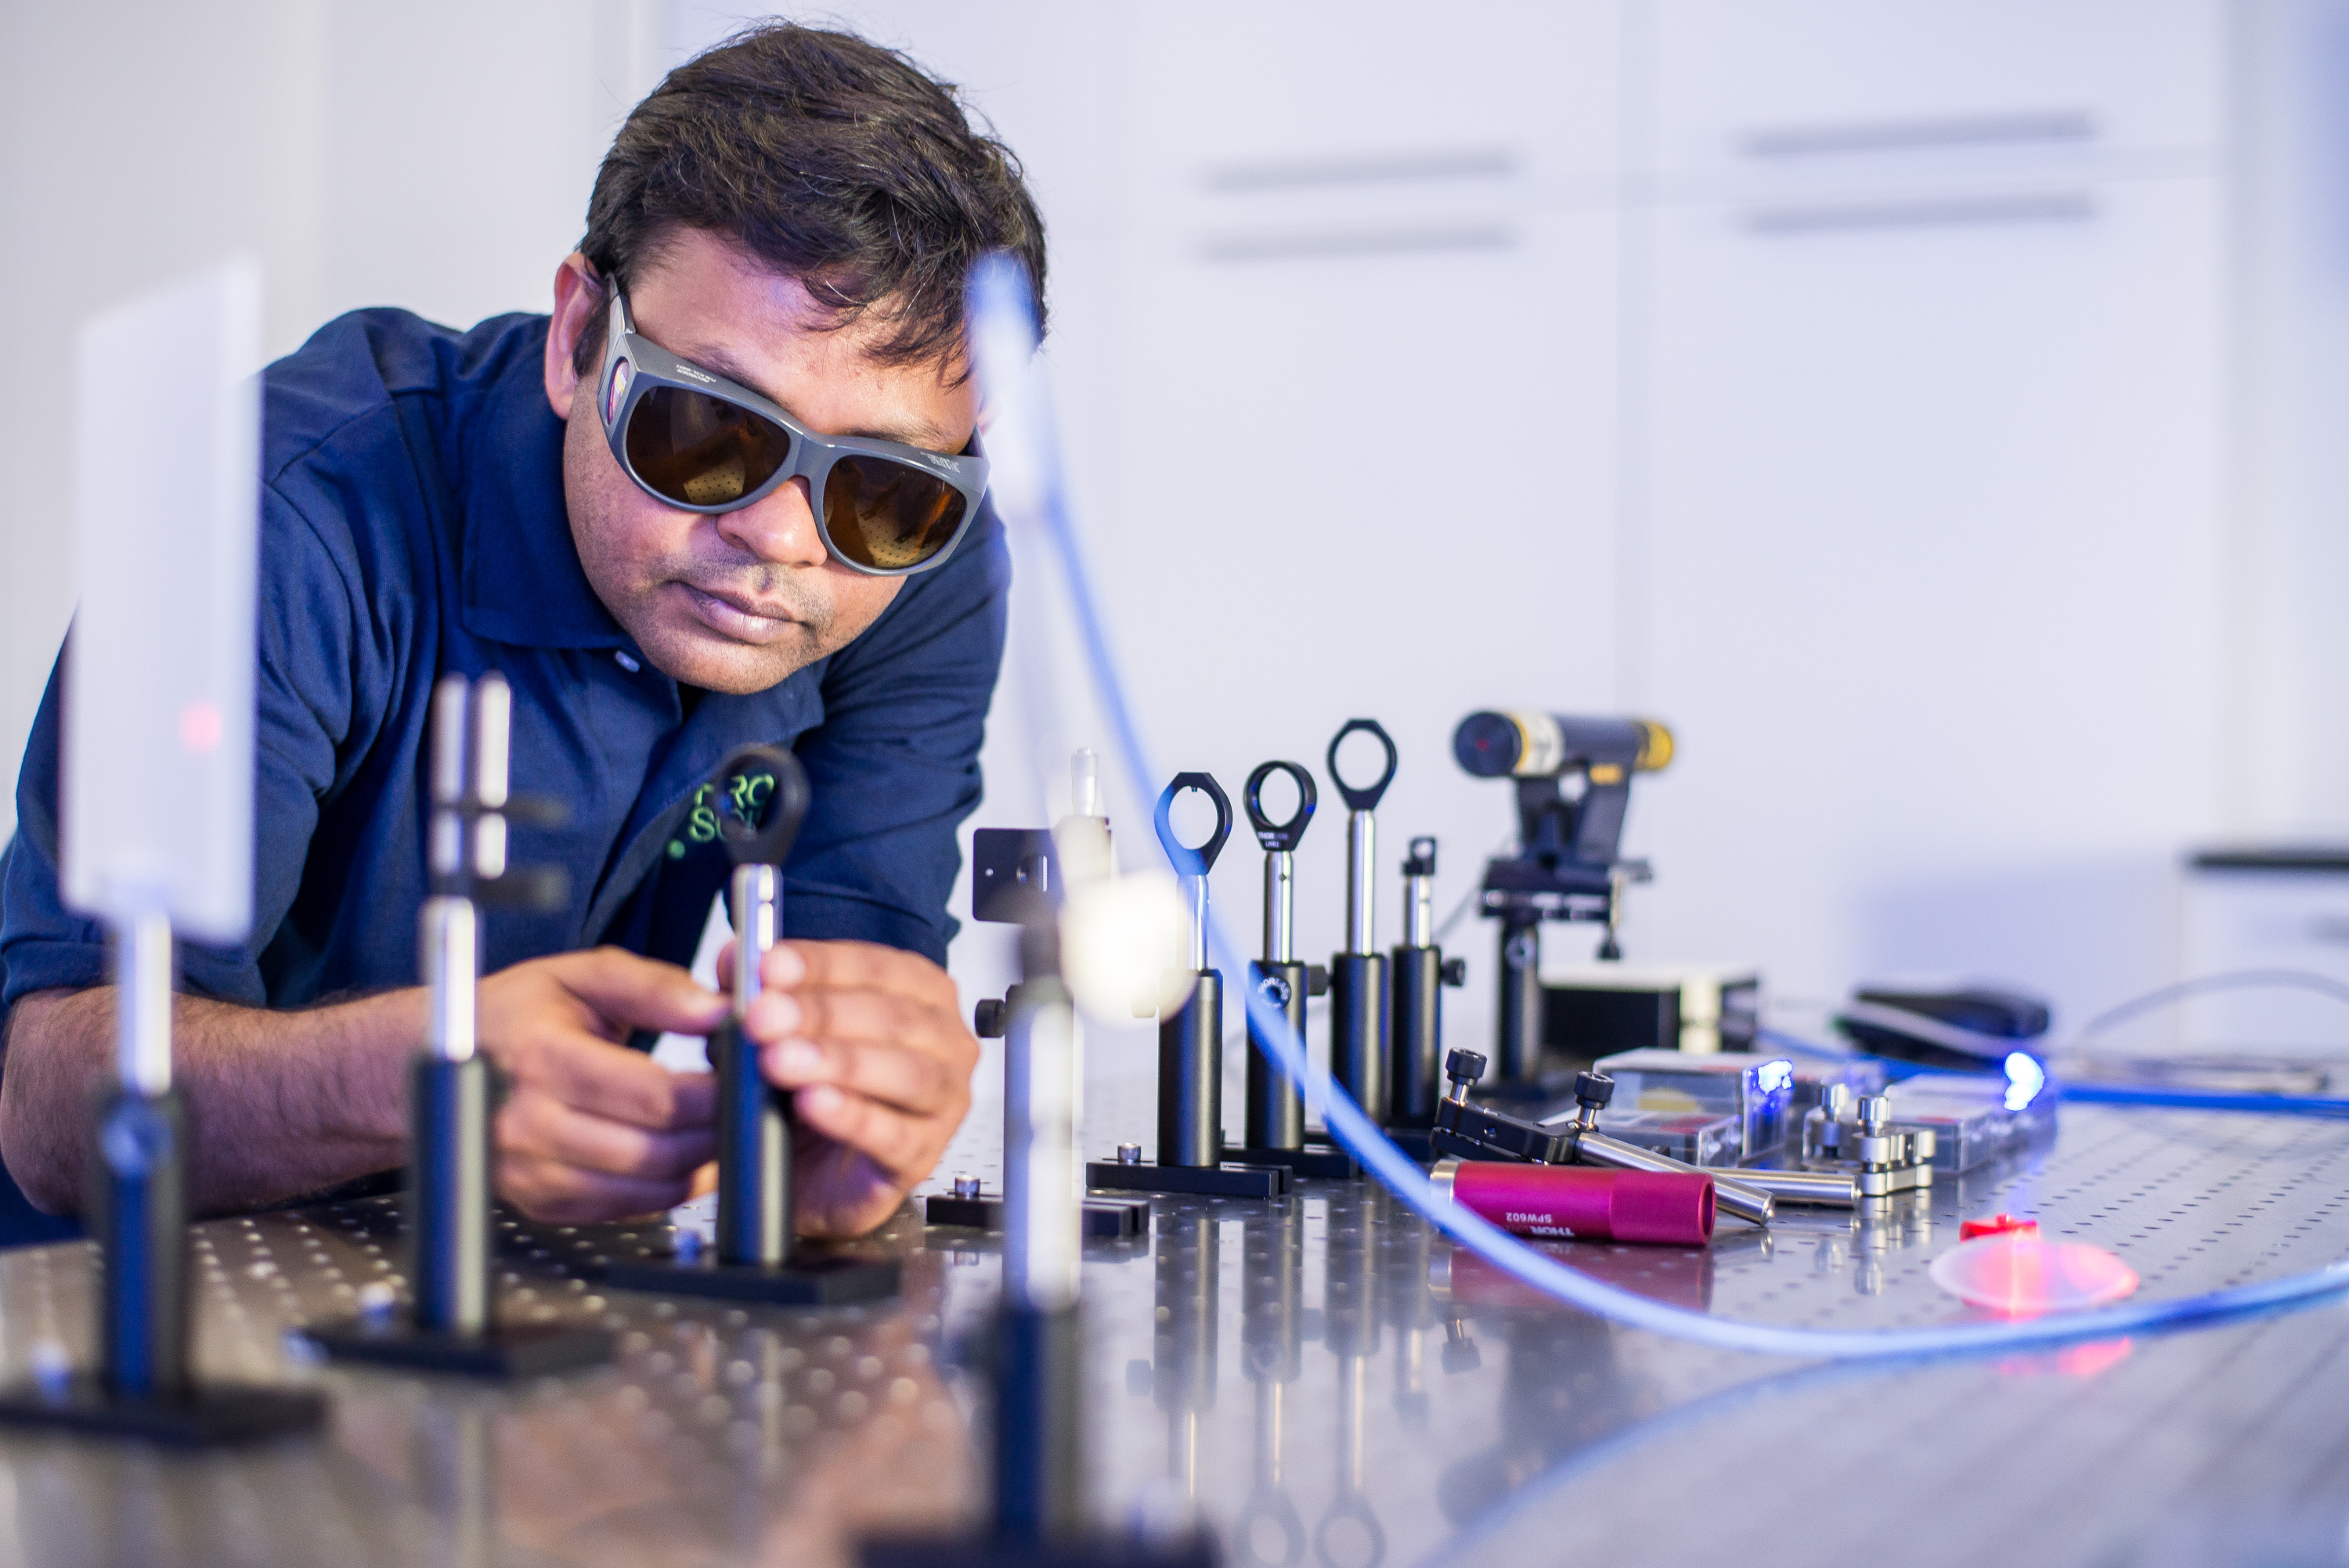 He is developing a carcinogen detector using a method known as laser-induced breakdown spectroscopy, visit him at the Inventors in Residence Lab